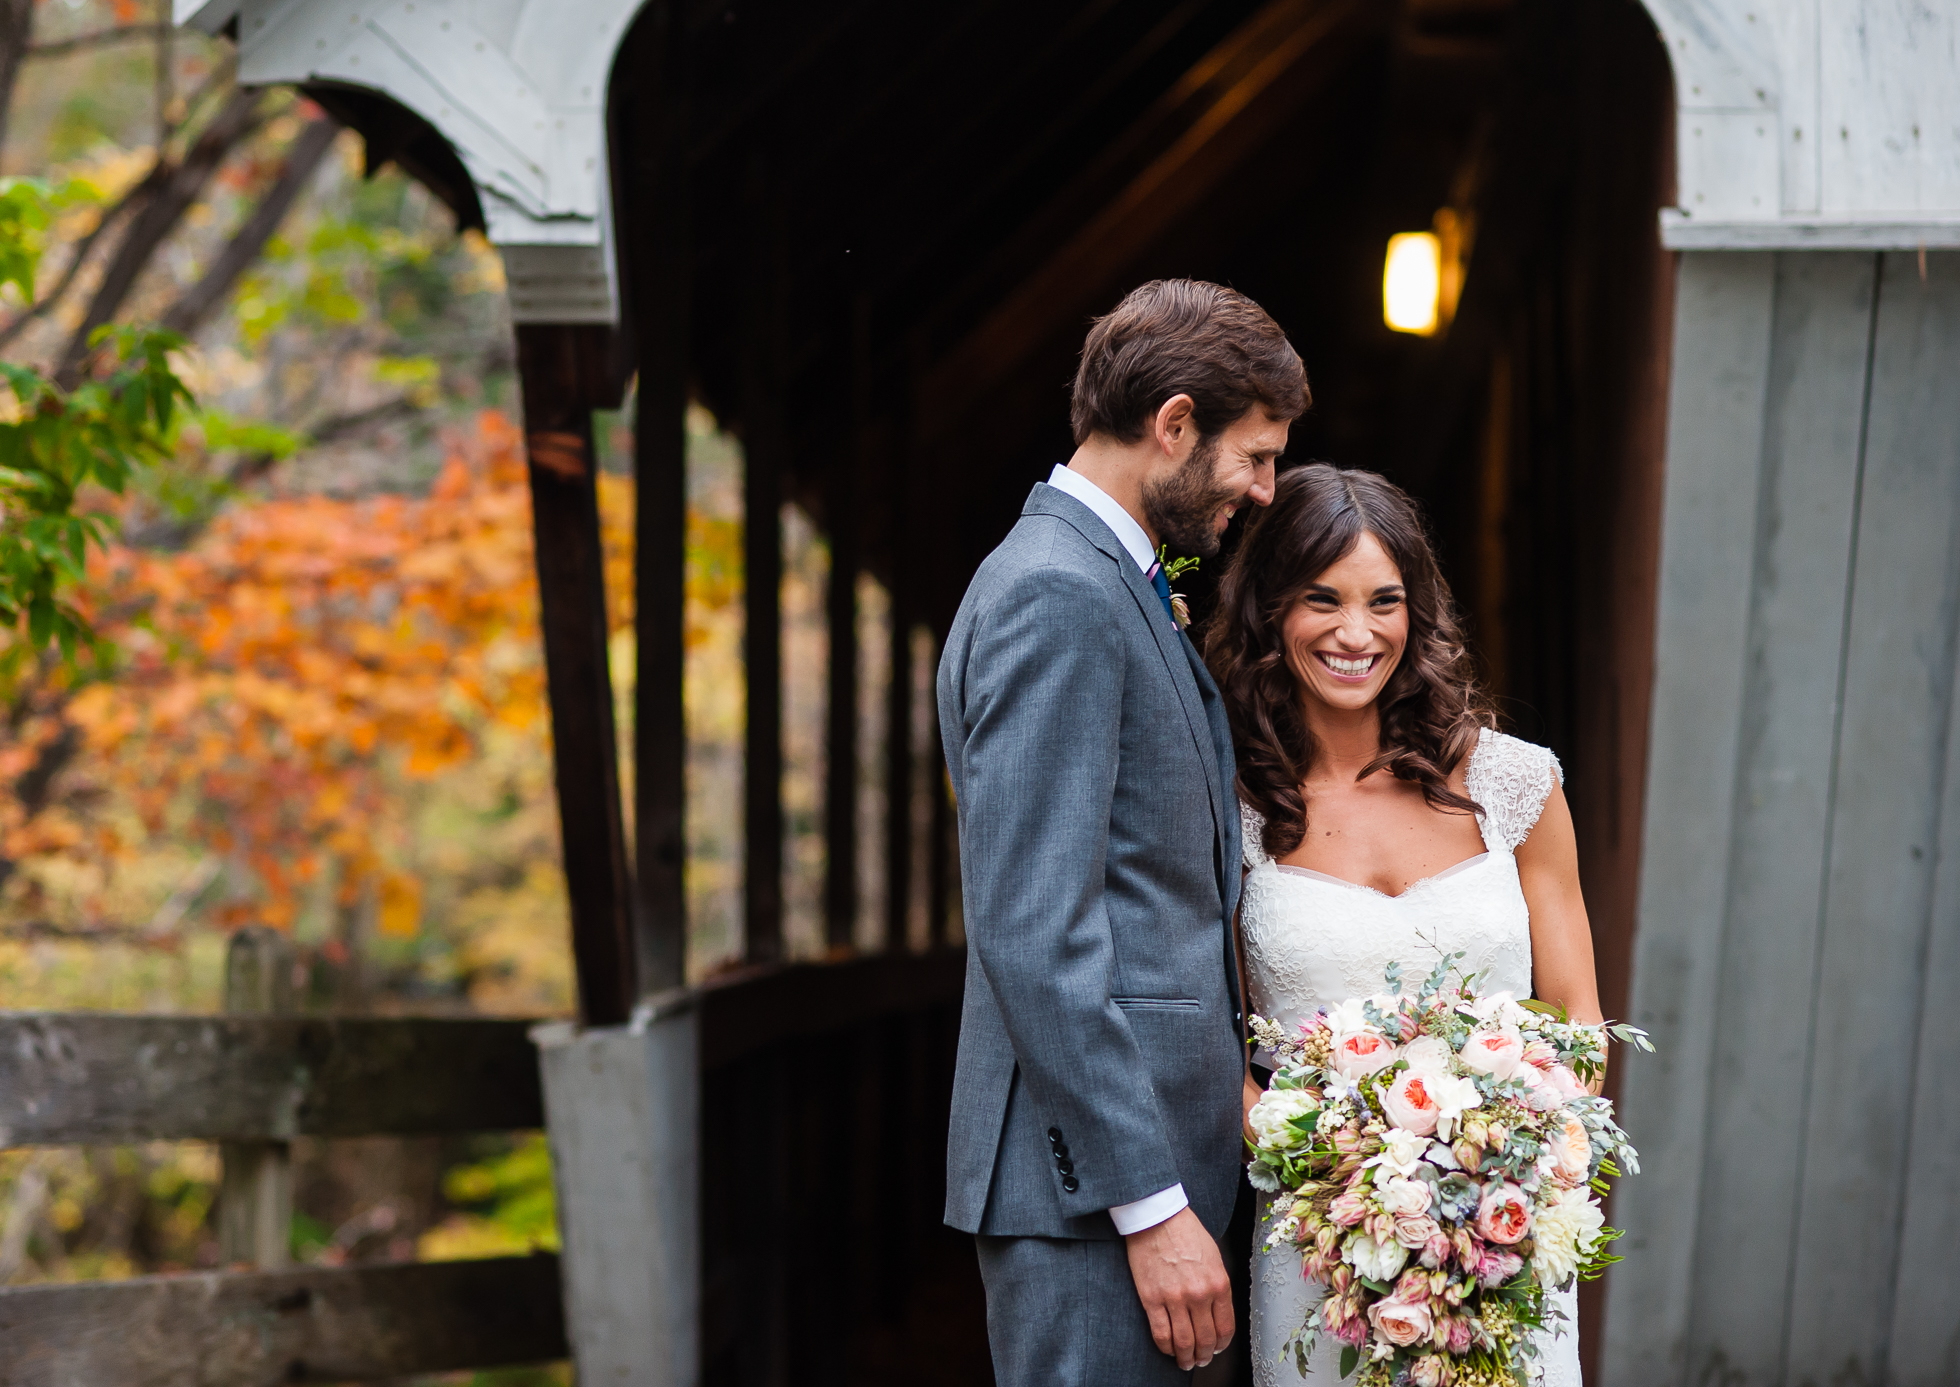 destination wedding photos woodstock vermont